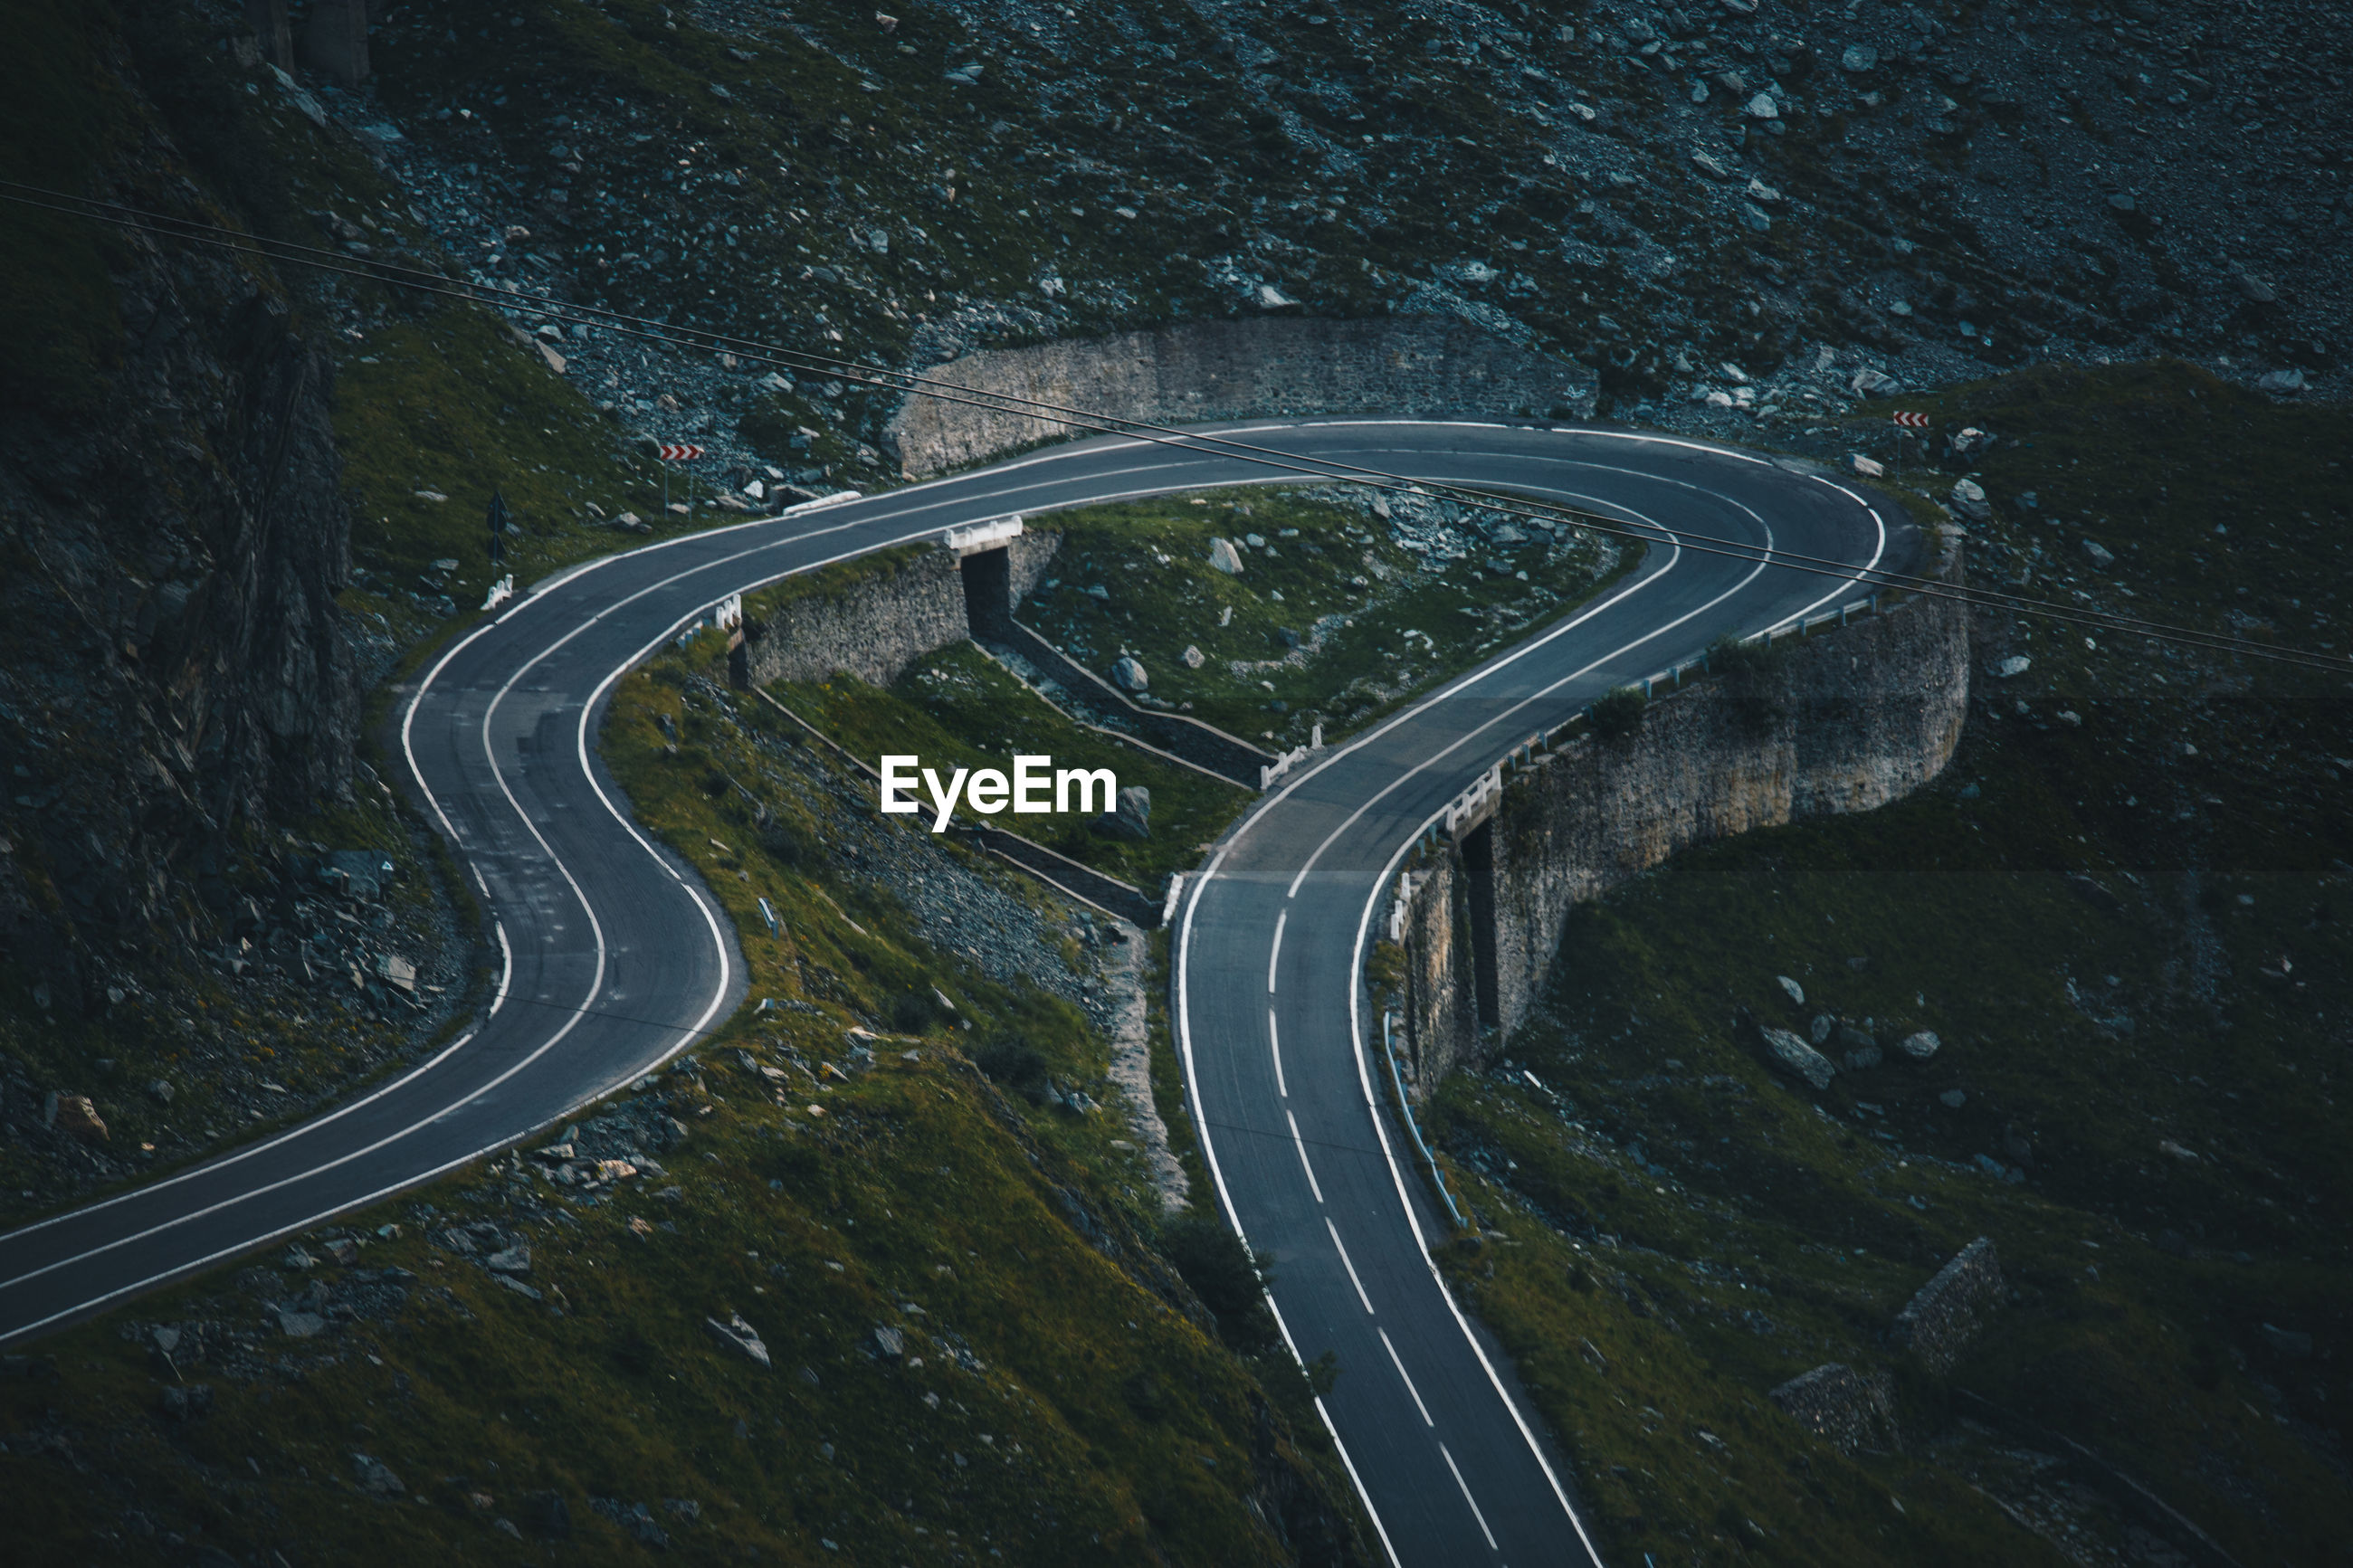 HIGH ANGLE VIEW OF ROAD ON MOUNTAINS